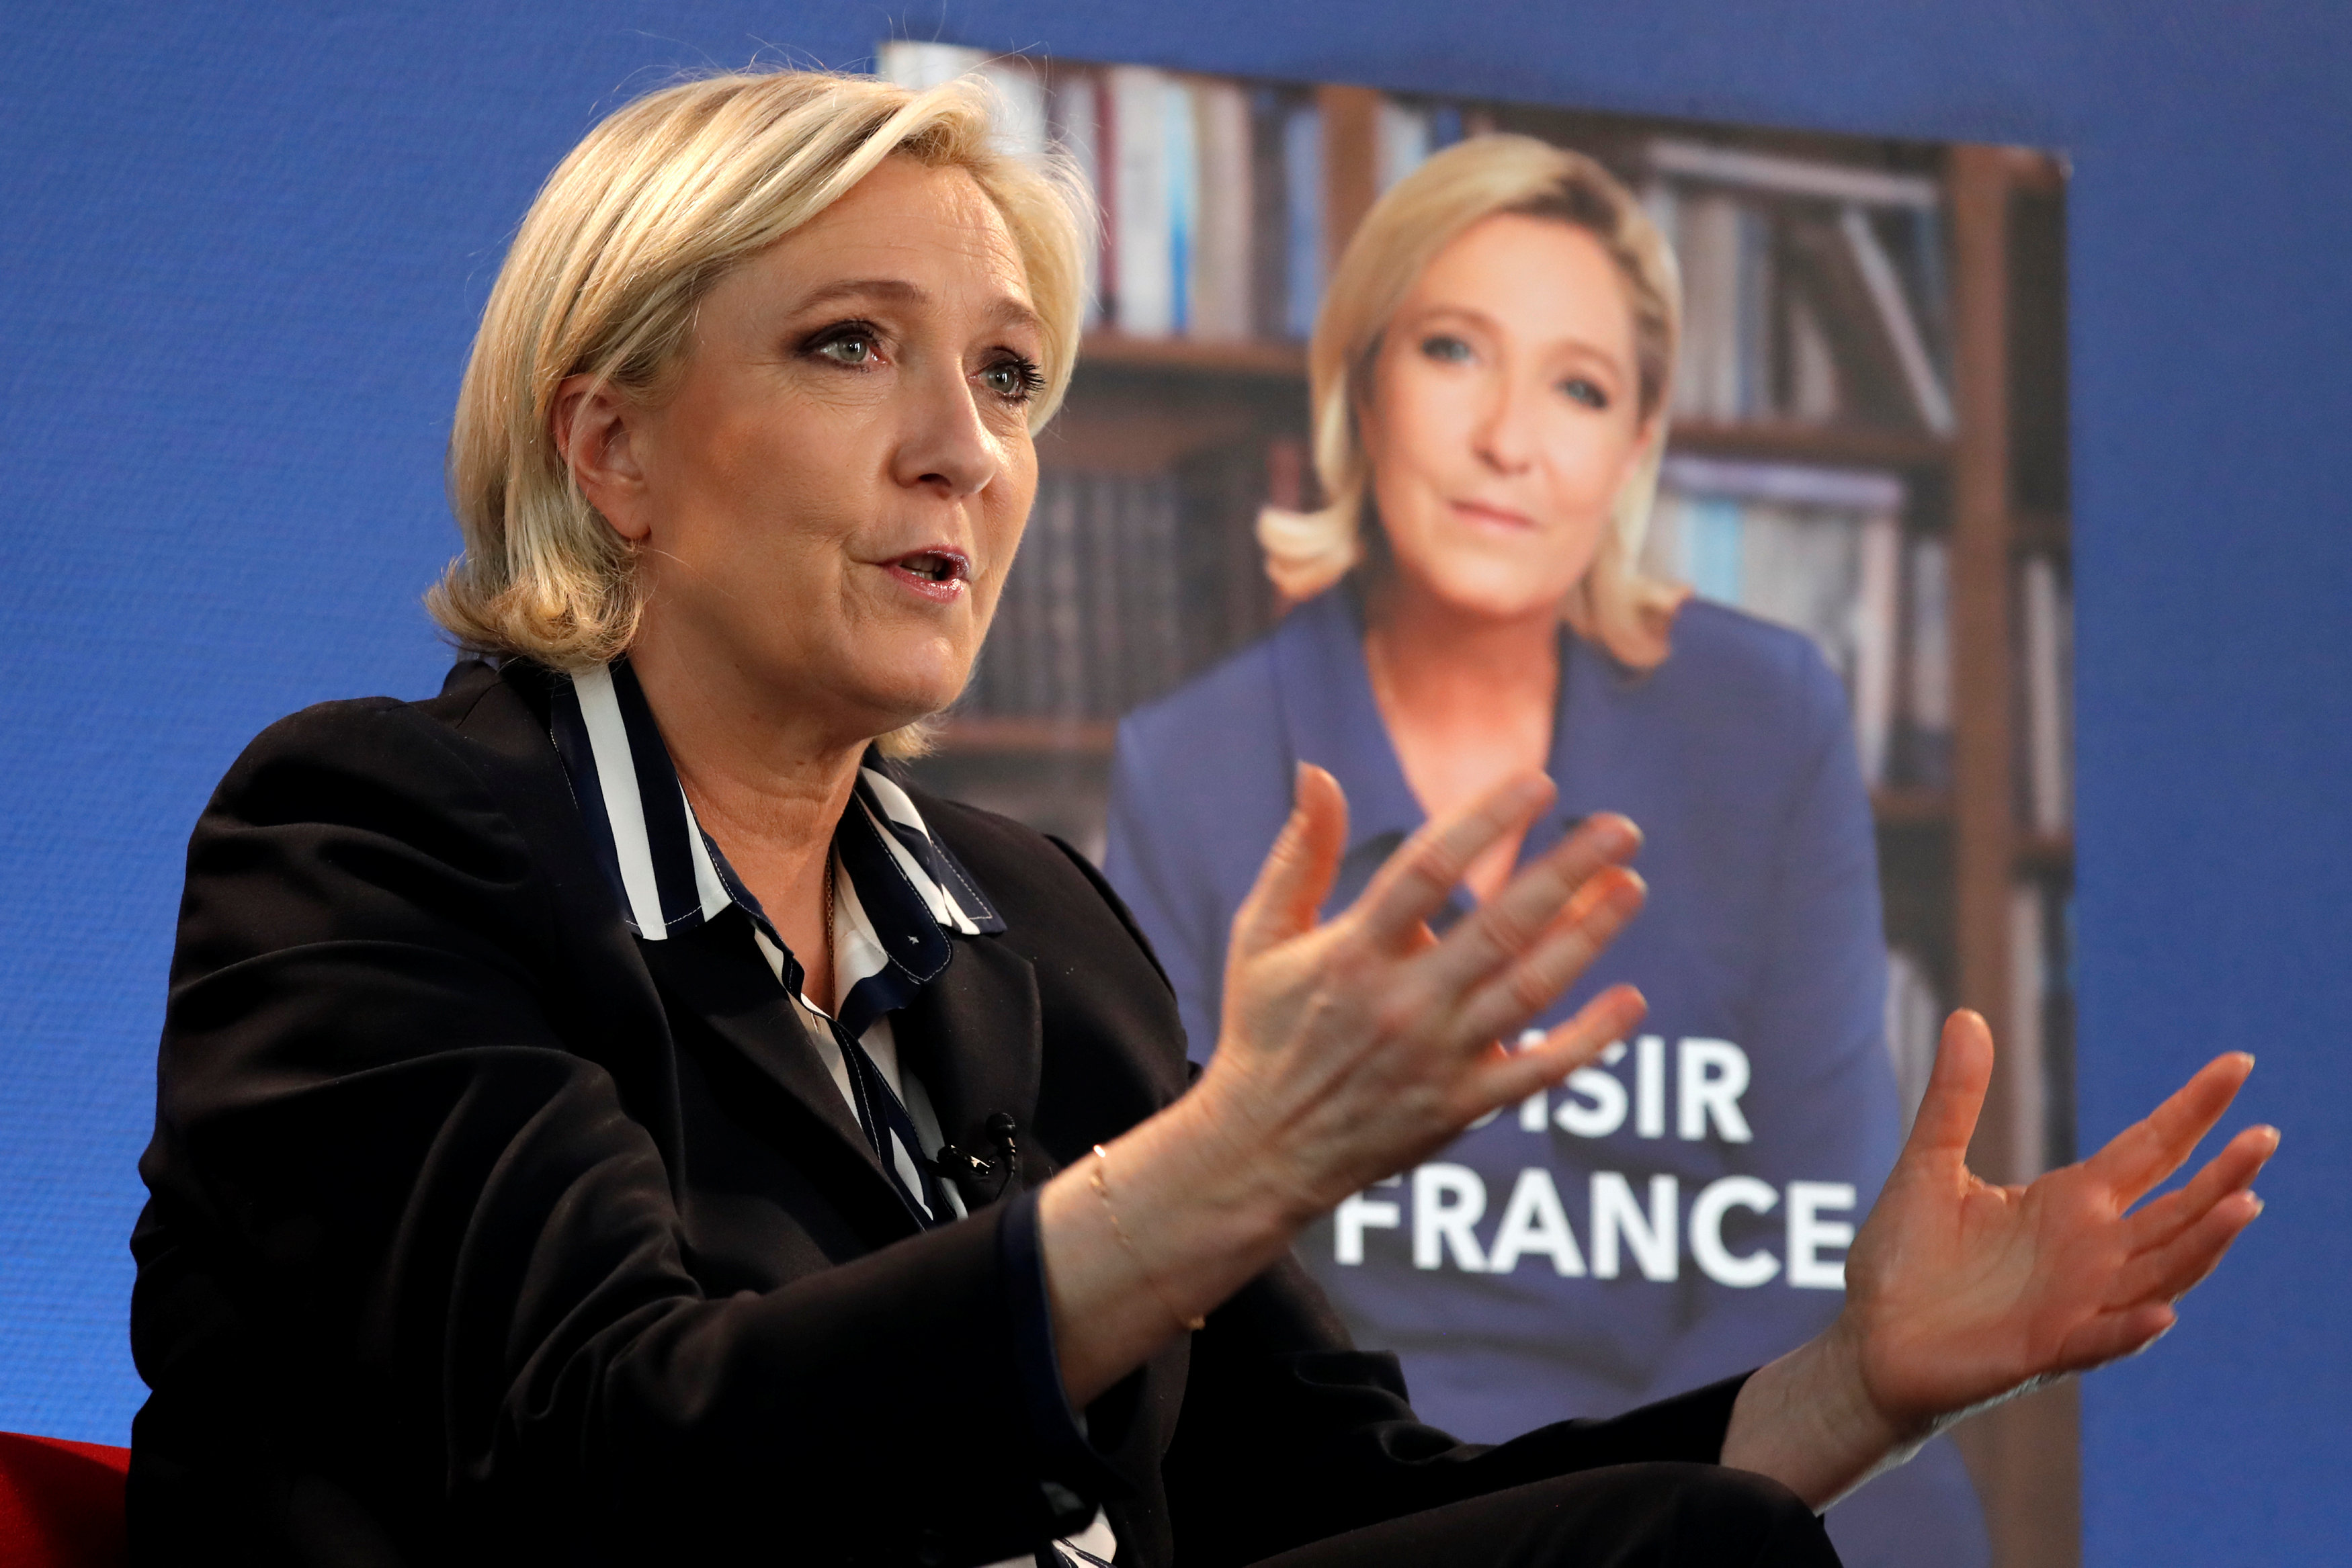 Marine Le Pen, French National Front (FN) candidate for 2017 presidential election, during an interview with Reuters in Paris, France on May 2, 2017. (REUTERS/Charles Platiau(